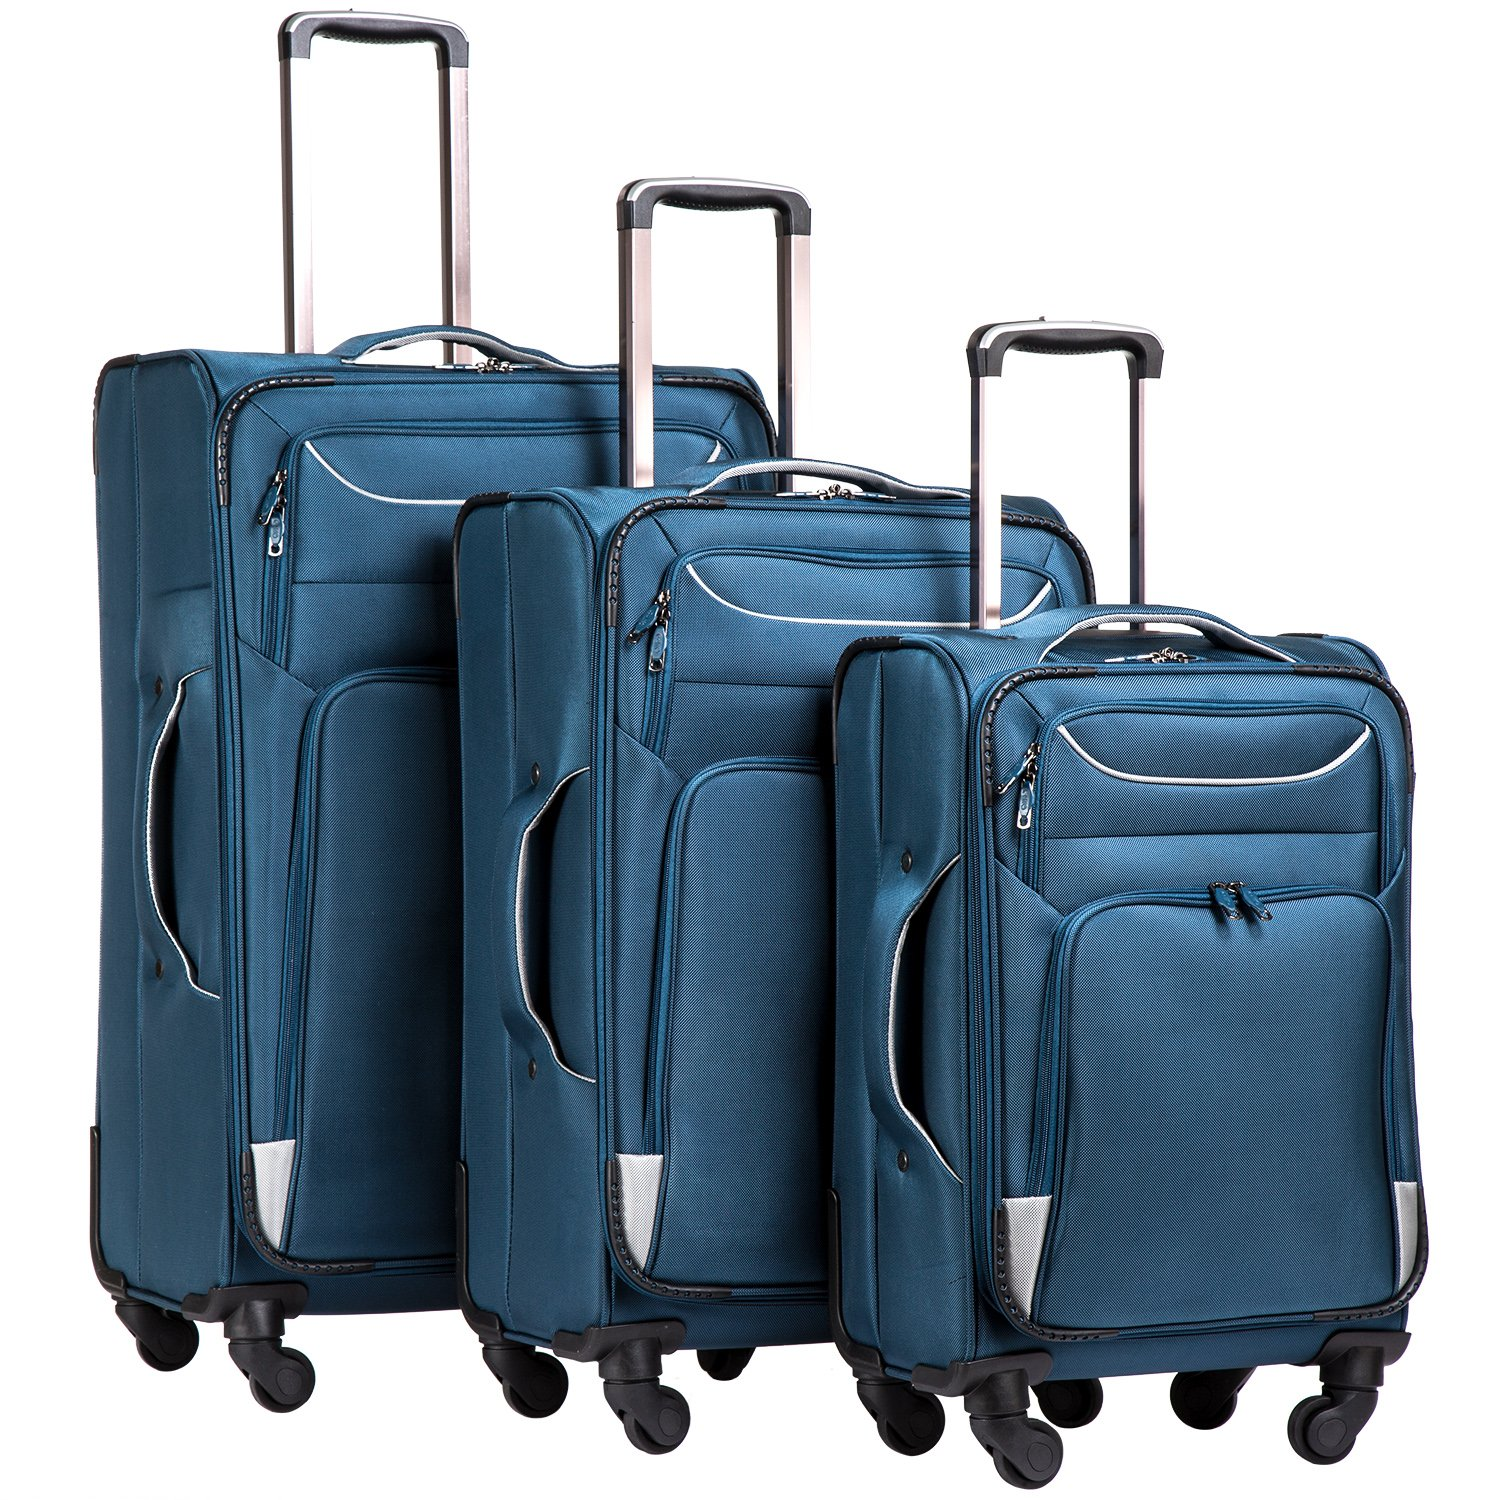 993e58c4445e Best Rated in Luggage Sets & Helpful Customer Reviews - Amazon.com